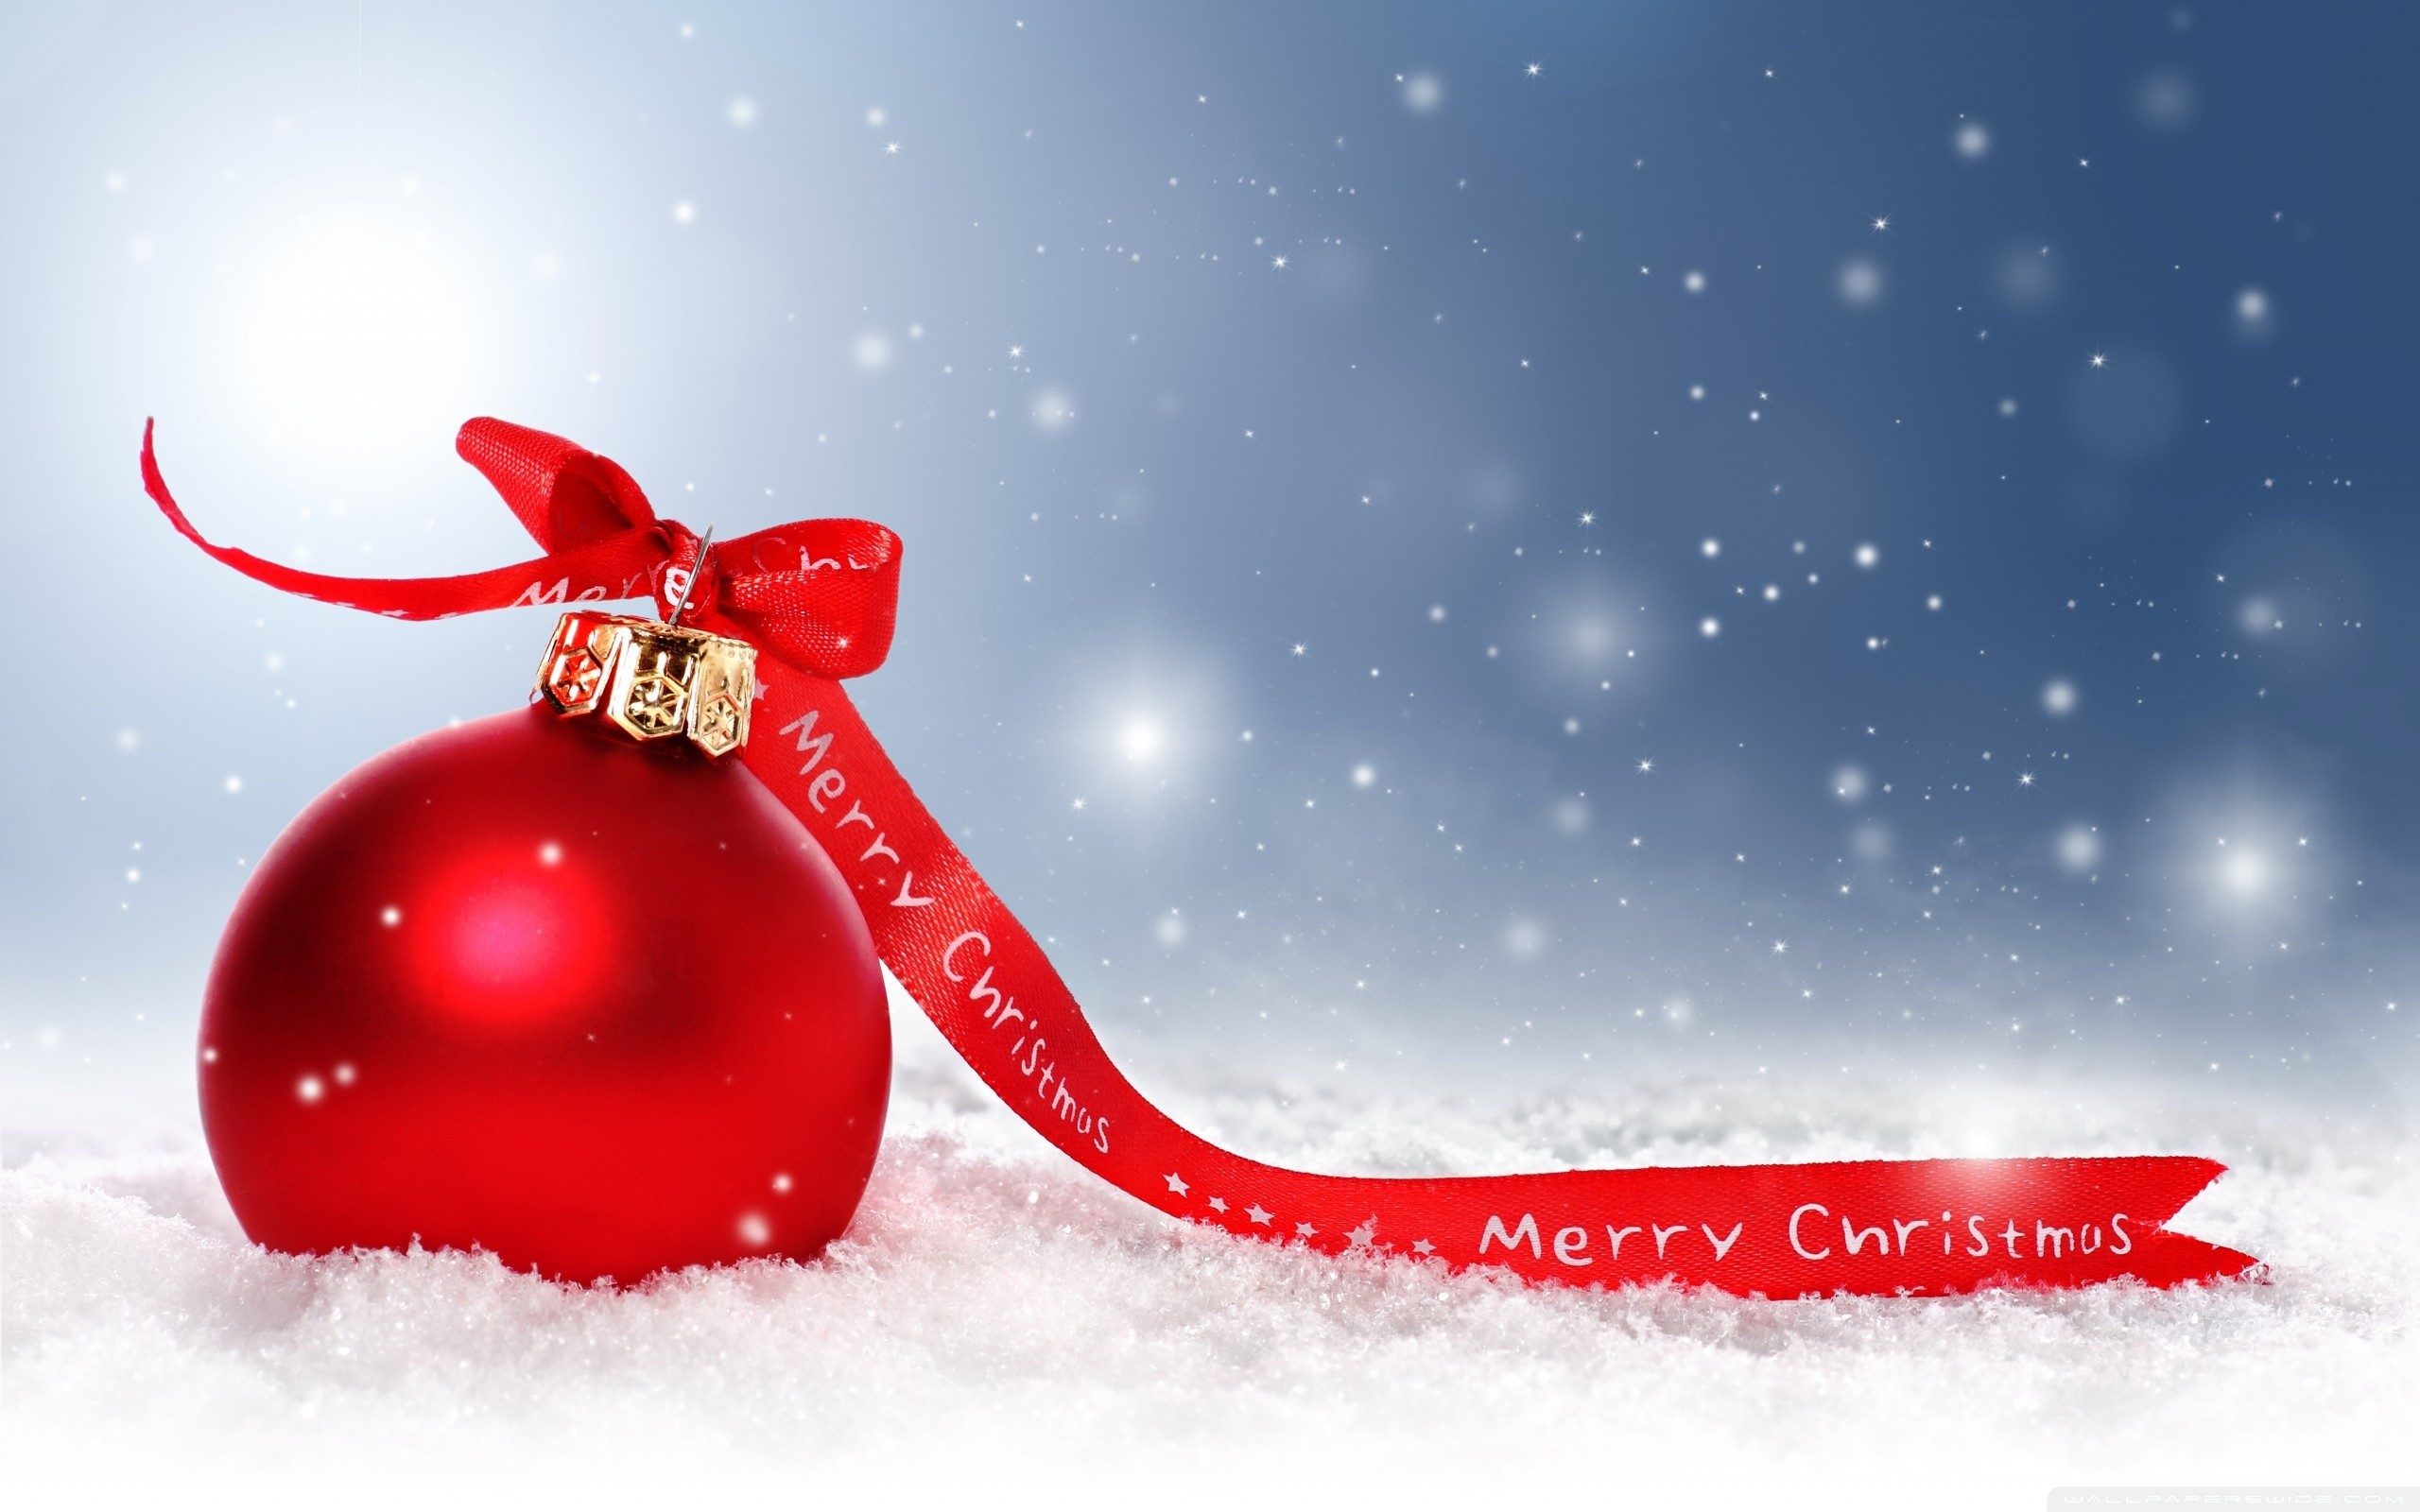 1920x1200 merry christmas wallpapers mobile - Merry Christmas Background